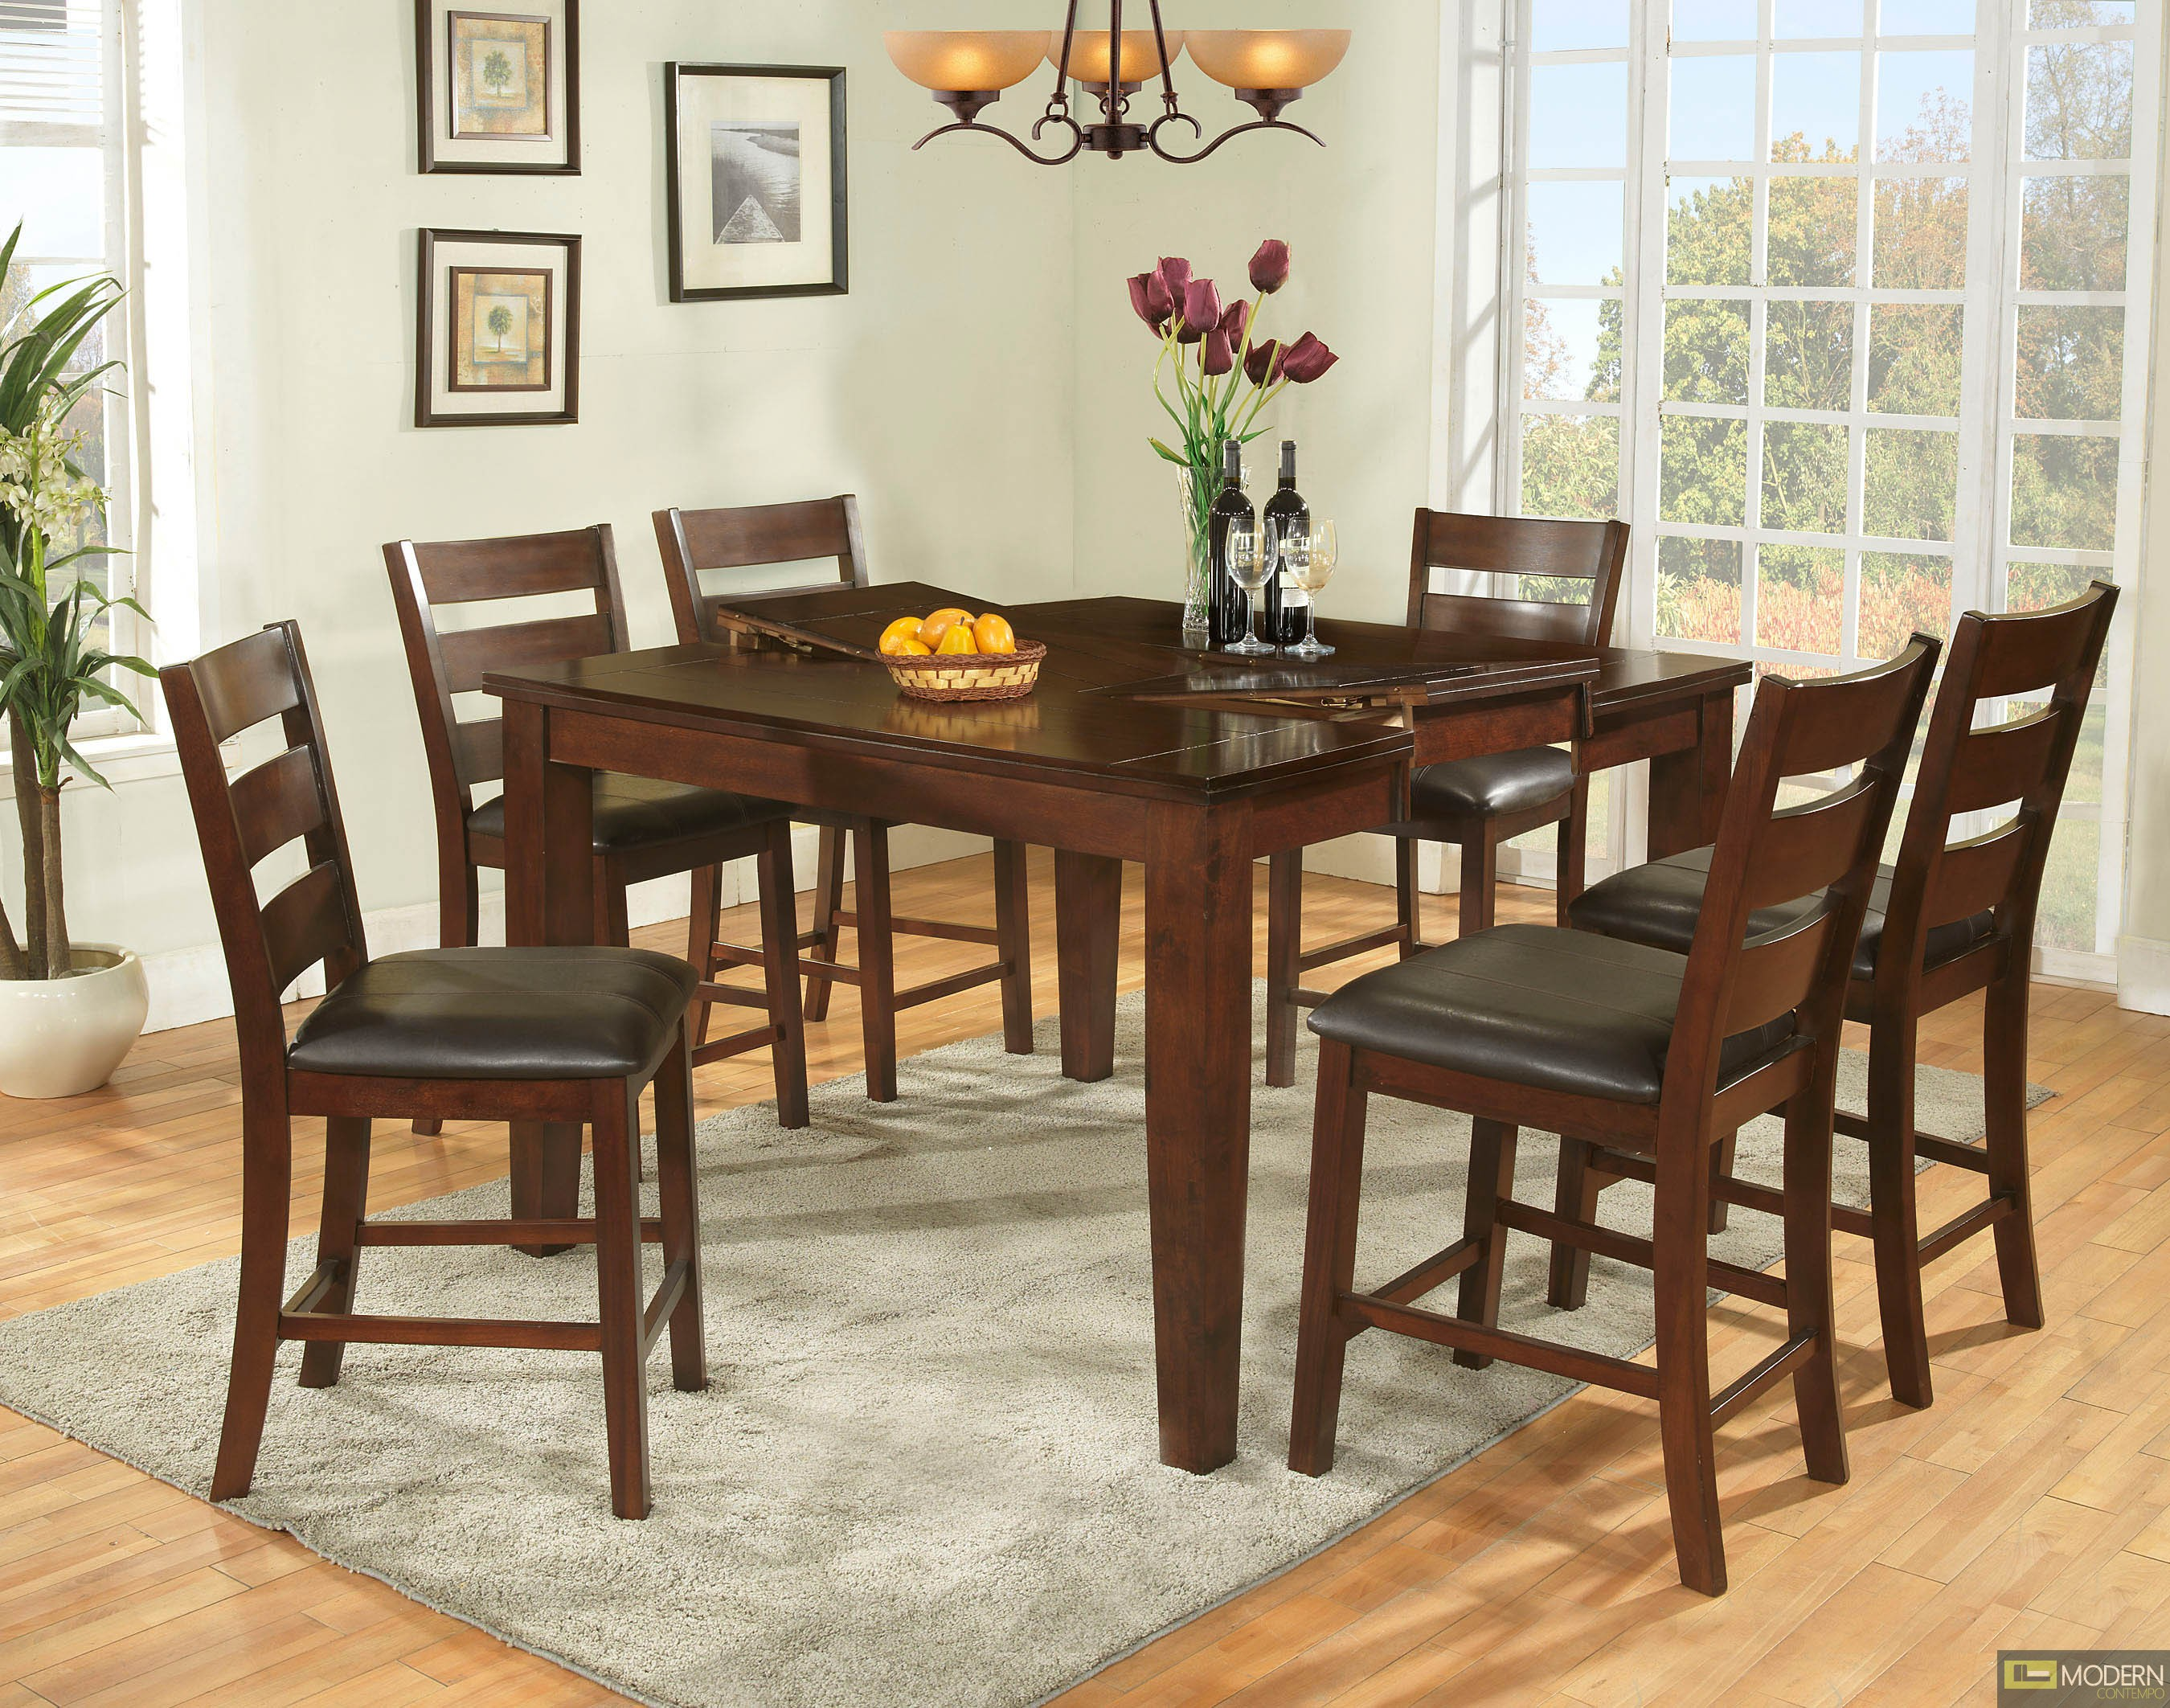 Affordable 7 Pc Modern Dark Walnut Counter Height Dining Room Table Cha